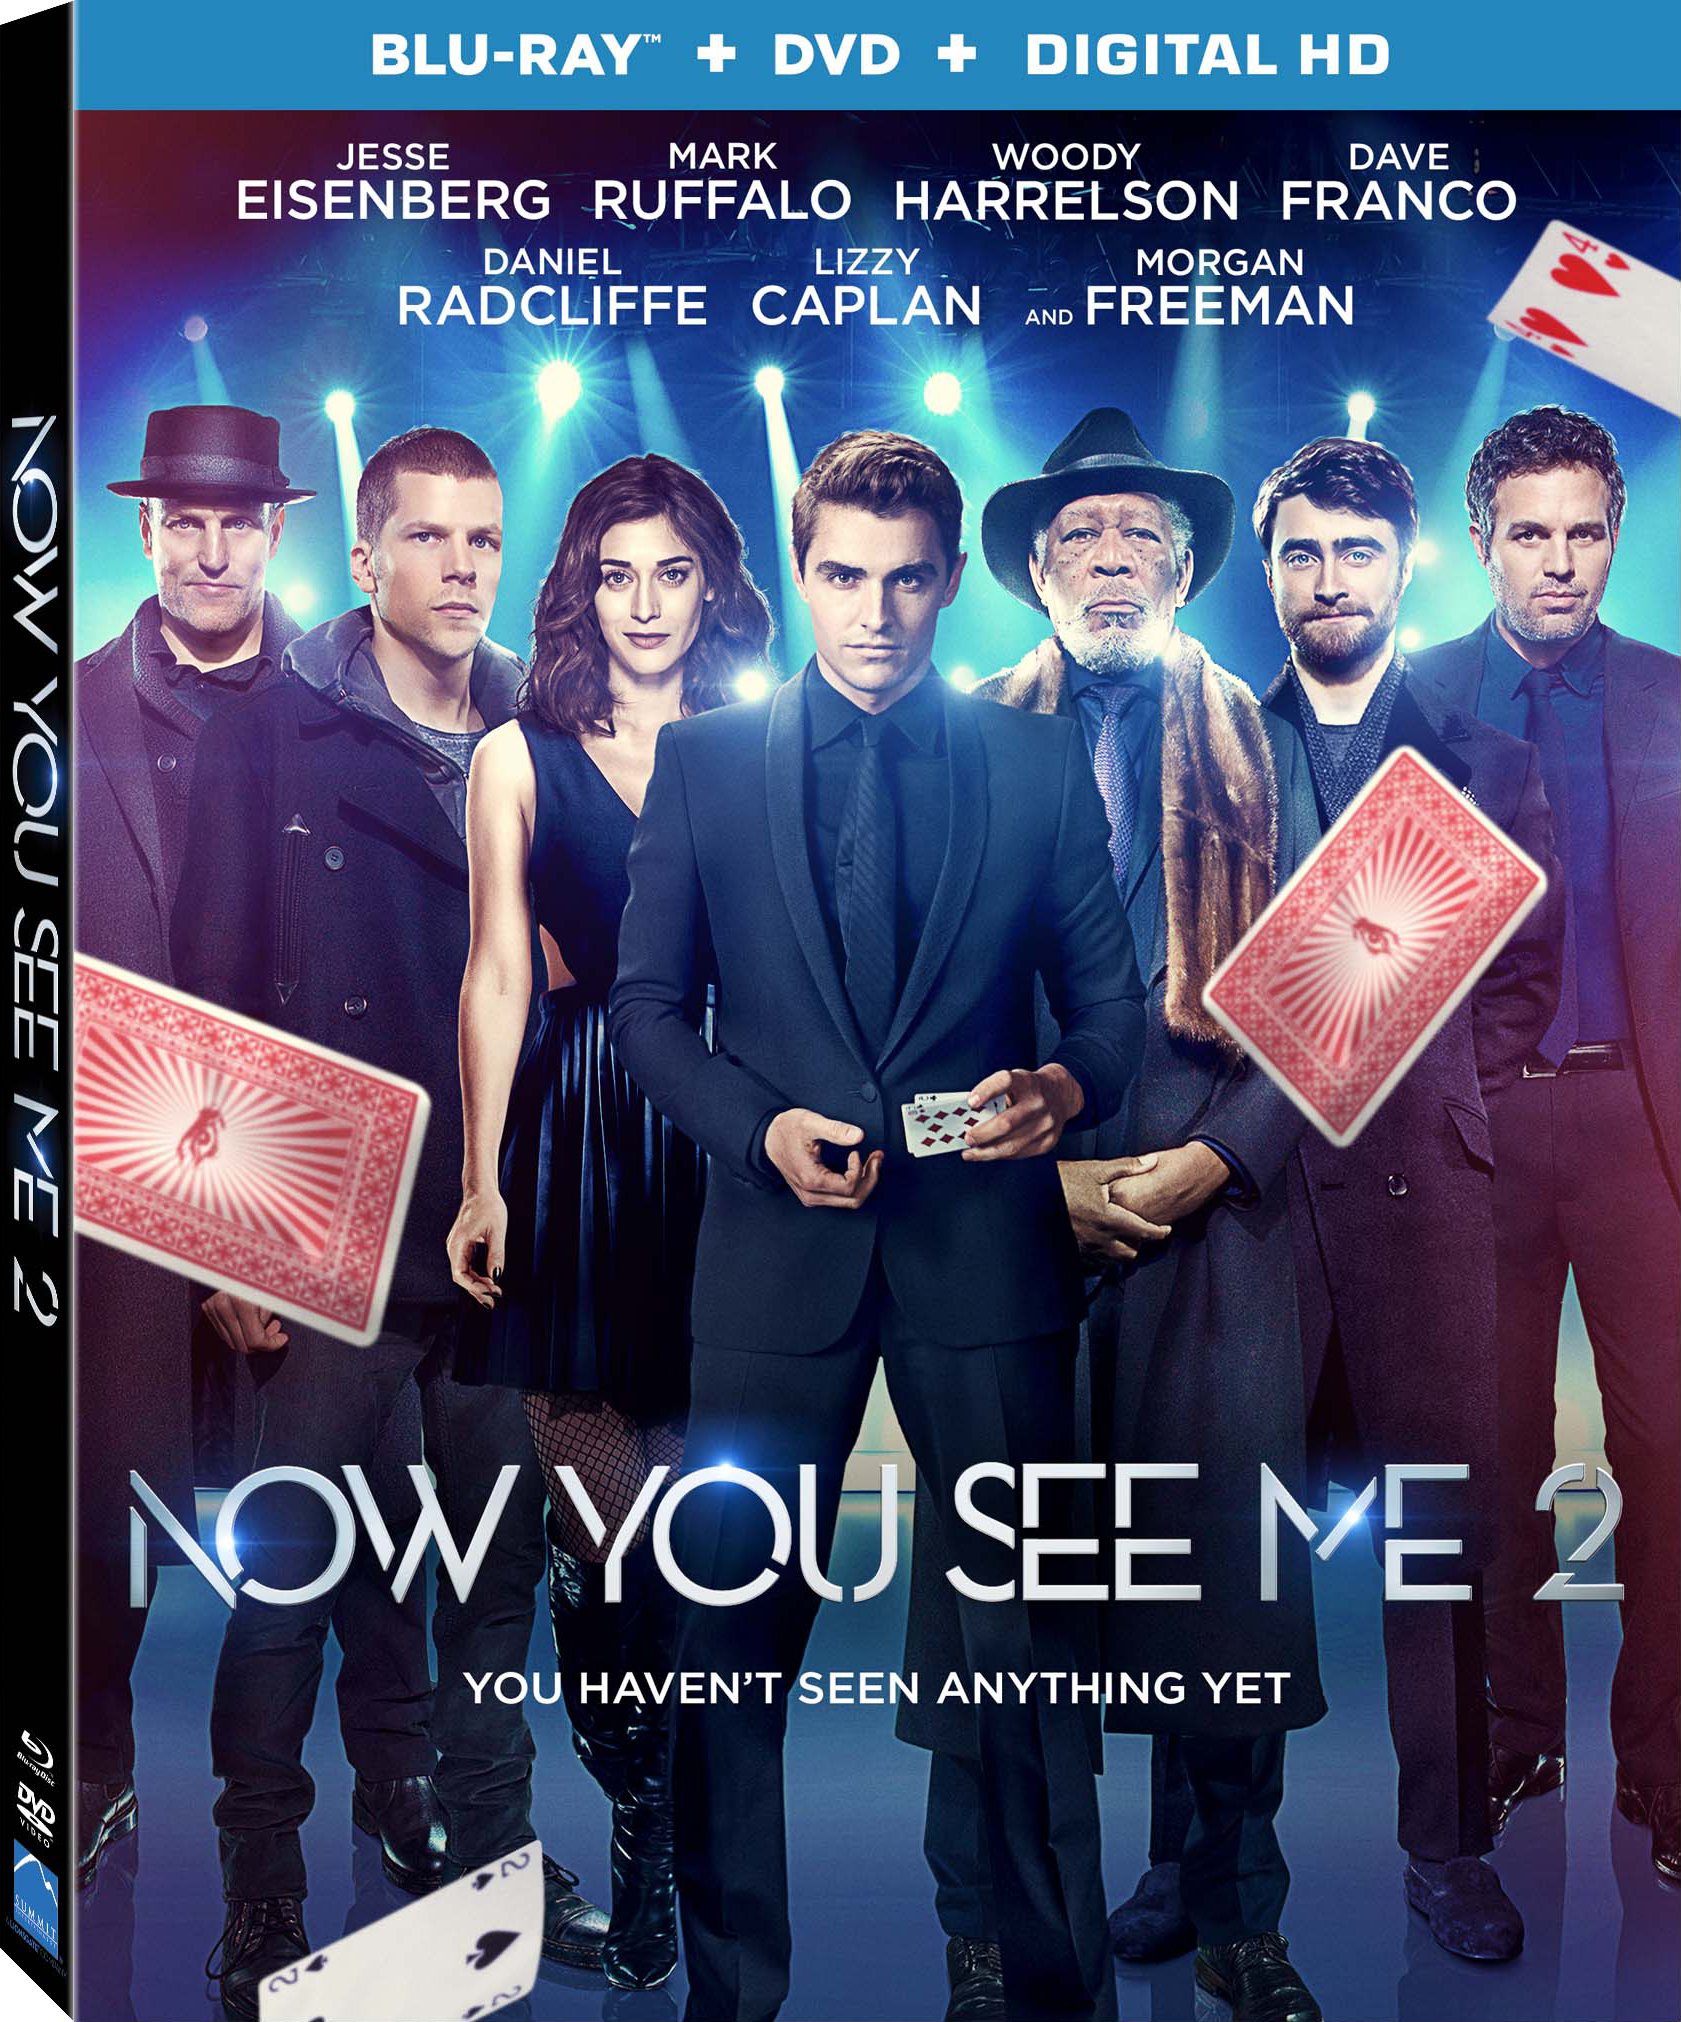 Now You See Me 2 (2016) poster image